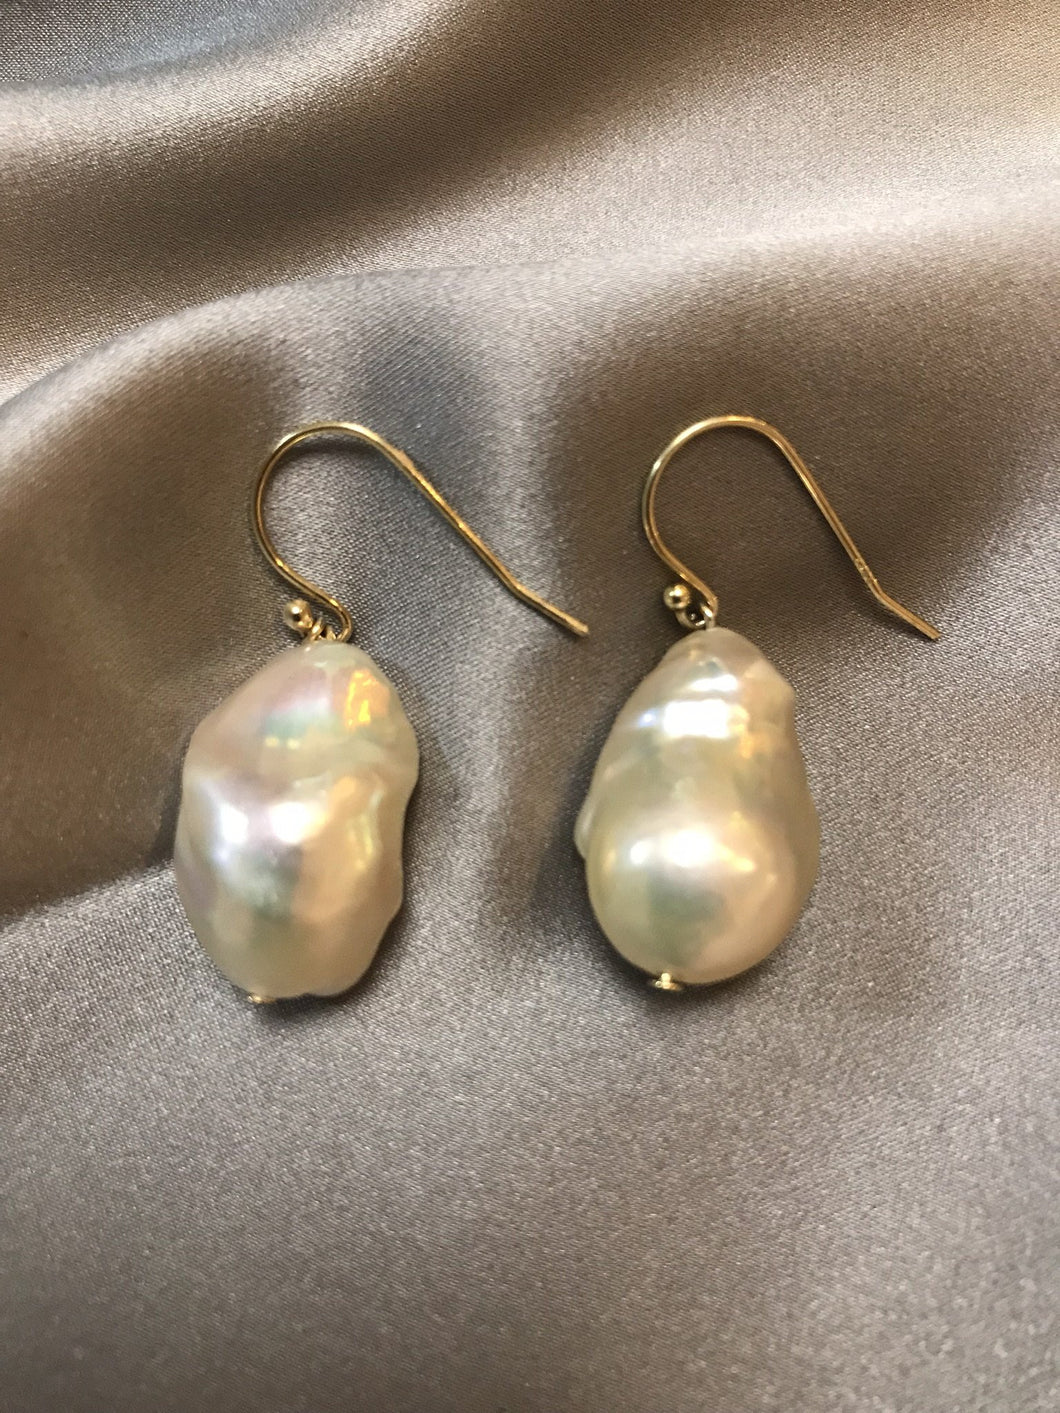 Aprica - 18K Gold or White Gold Plated Baroque Pearl Earrings